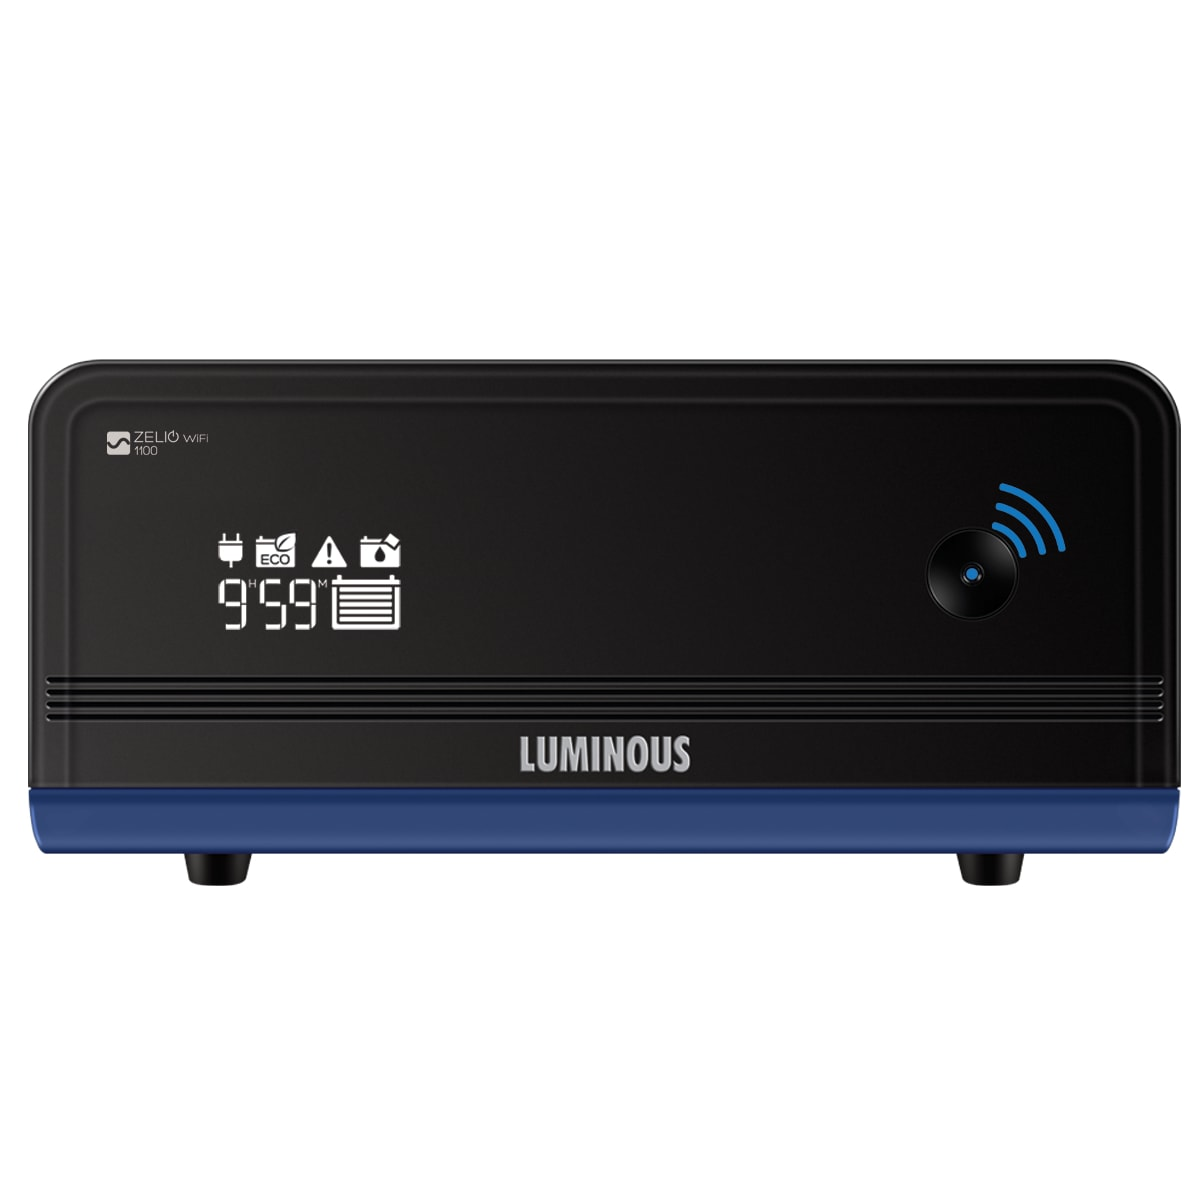 Luminous Zelio+ Wifi 1100 Home UPS